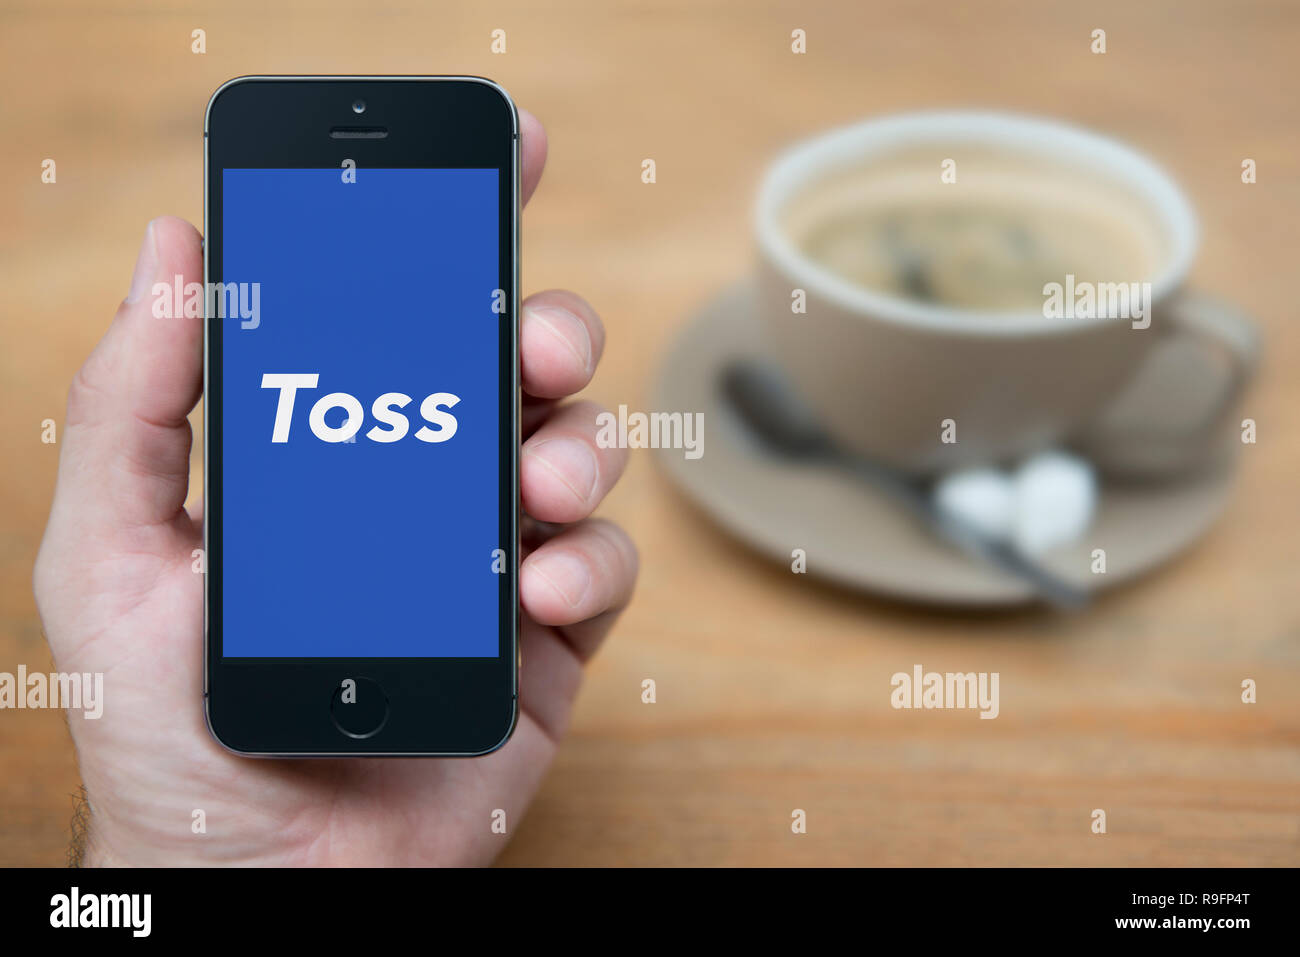 A man looks at his iPhone which displays the Toss logo (Editorial use only). - Stock Image